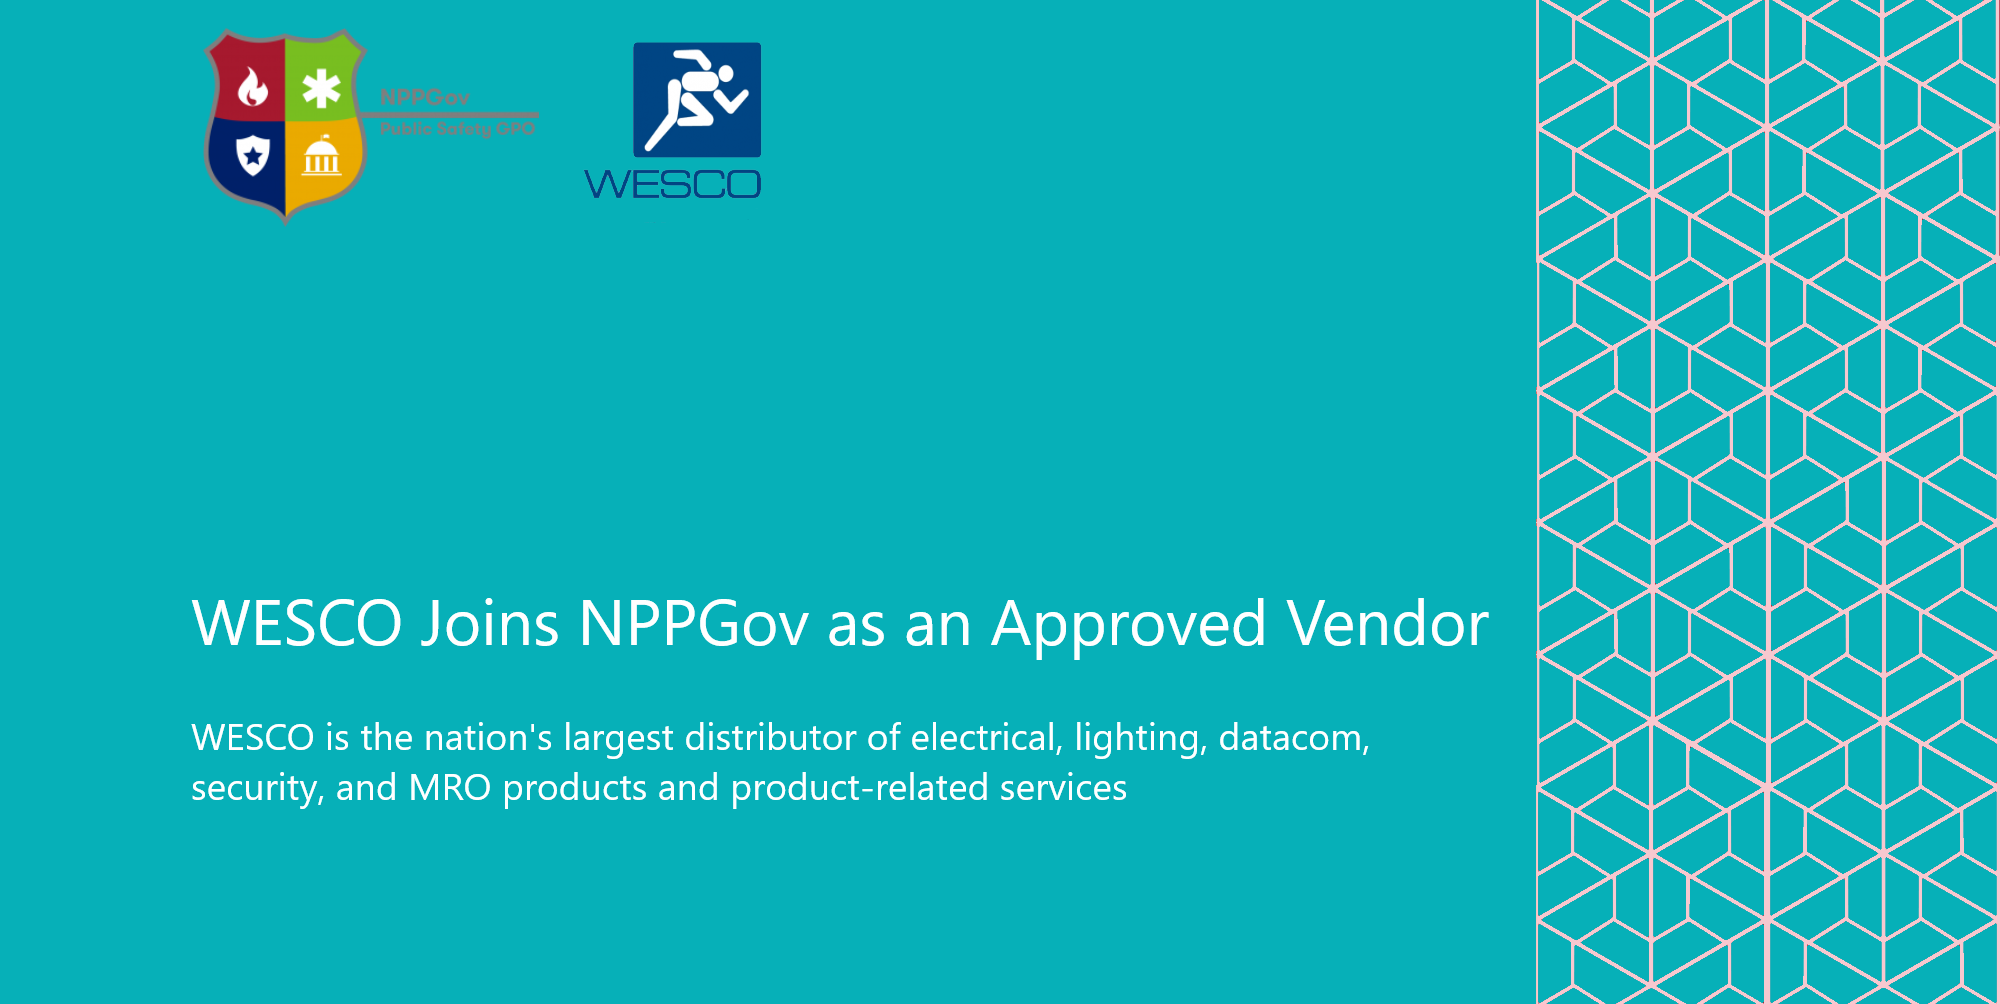 WESCO Joins NPPGov as an Approved Vendor